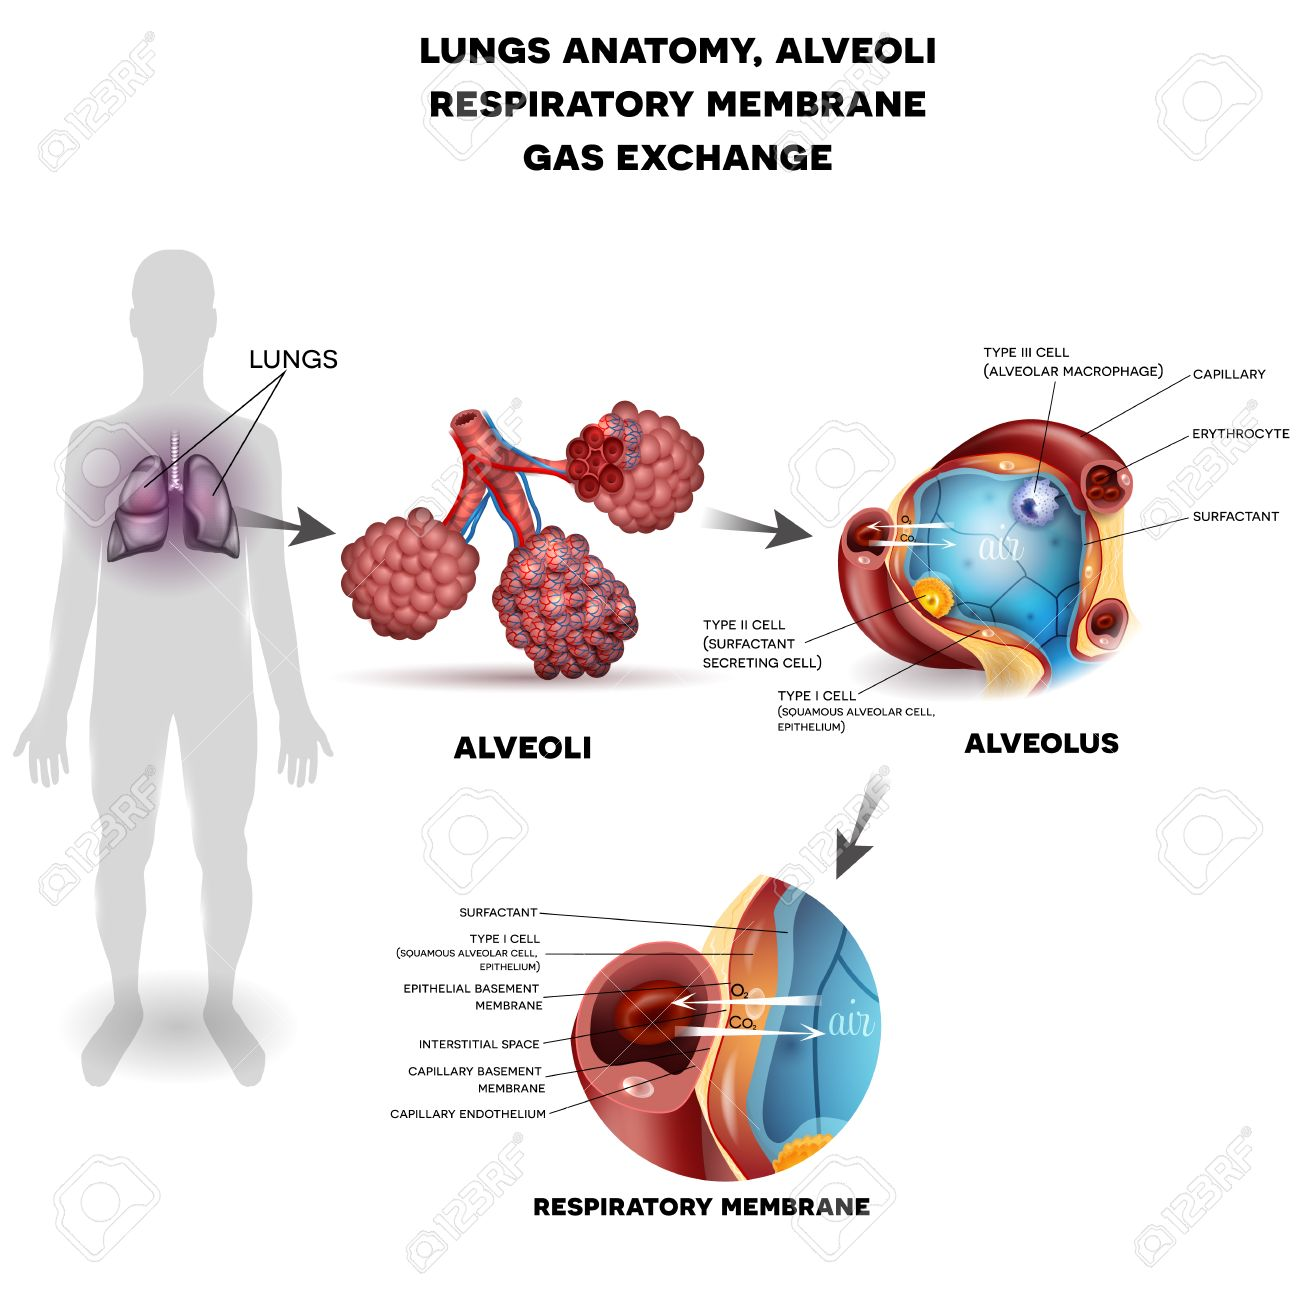 Respiratory System, Lungs And Alveoli. Respiratory Membrane Of ...